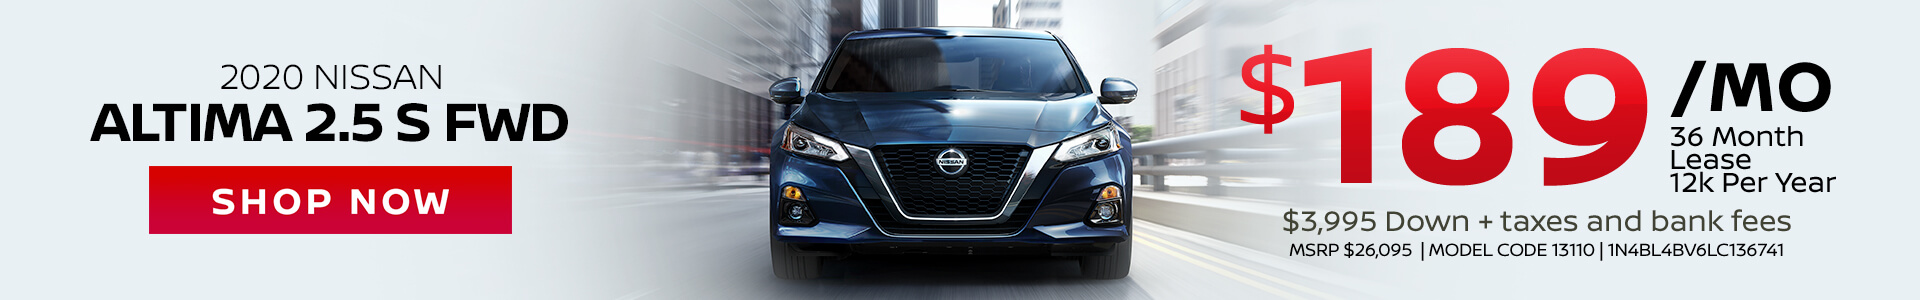 Nissan Altima $189 Lease